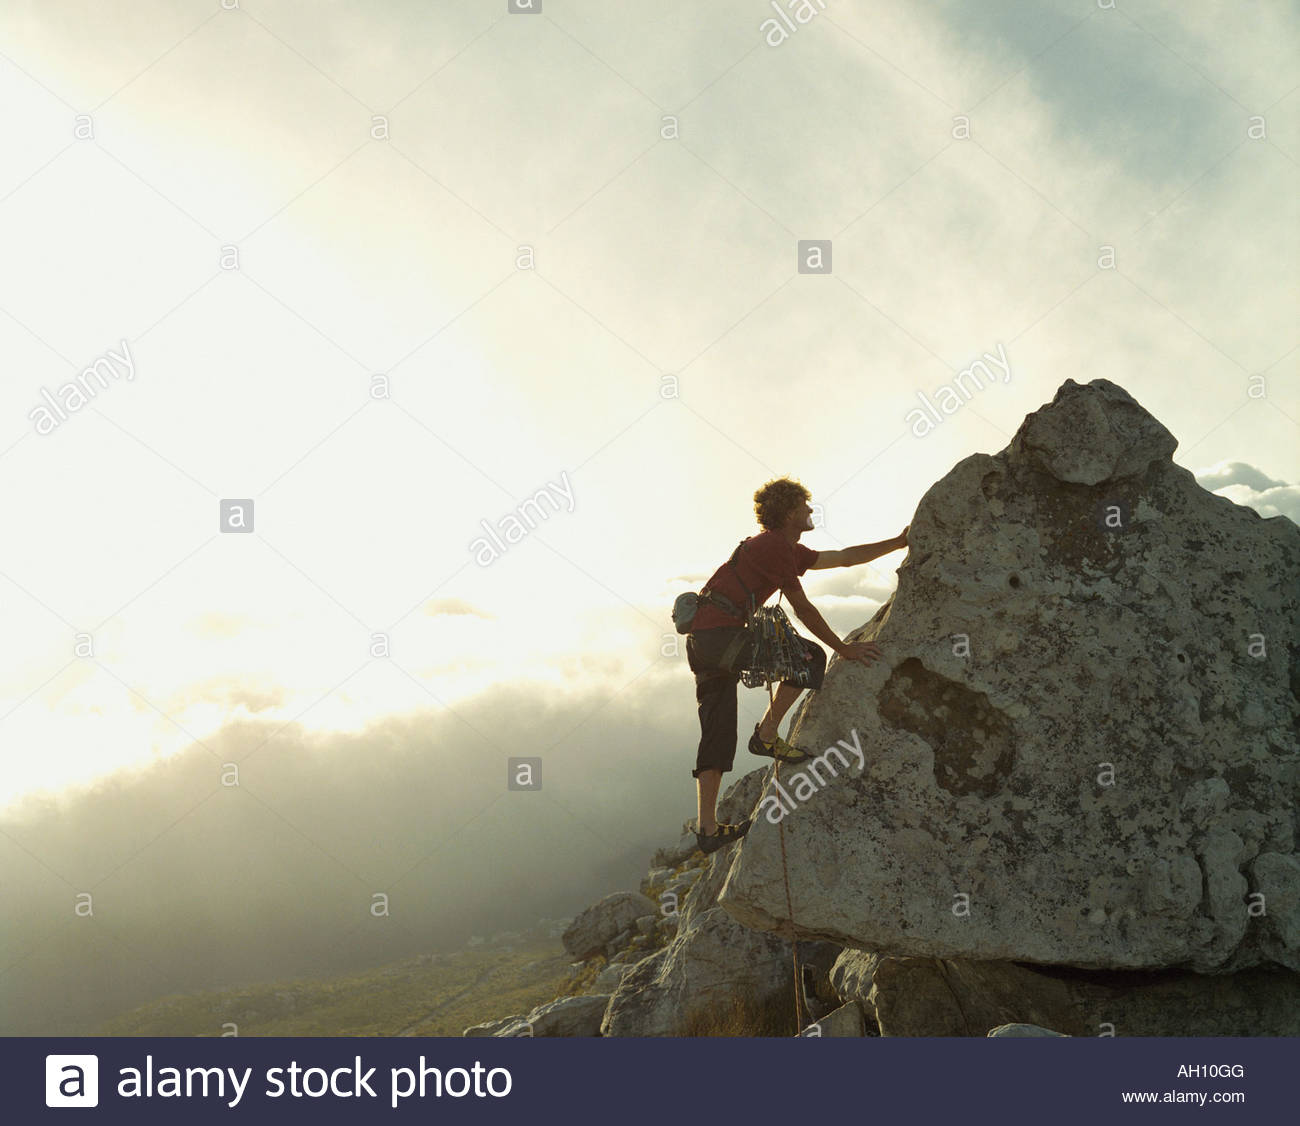 A mountain climber reaching the top of a mountain - Stock Image